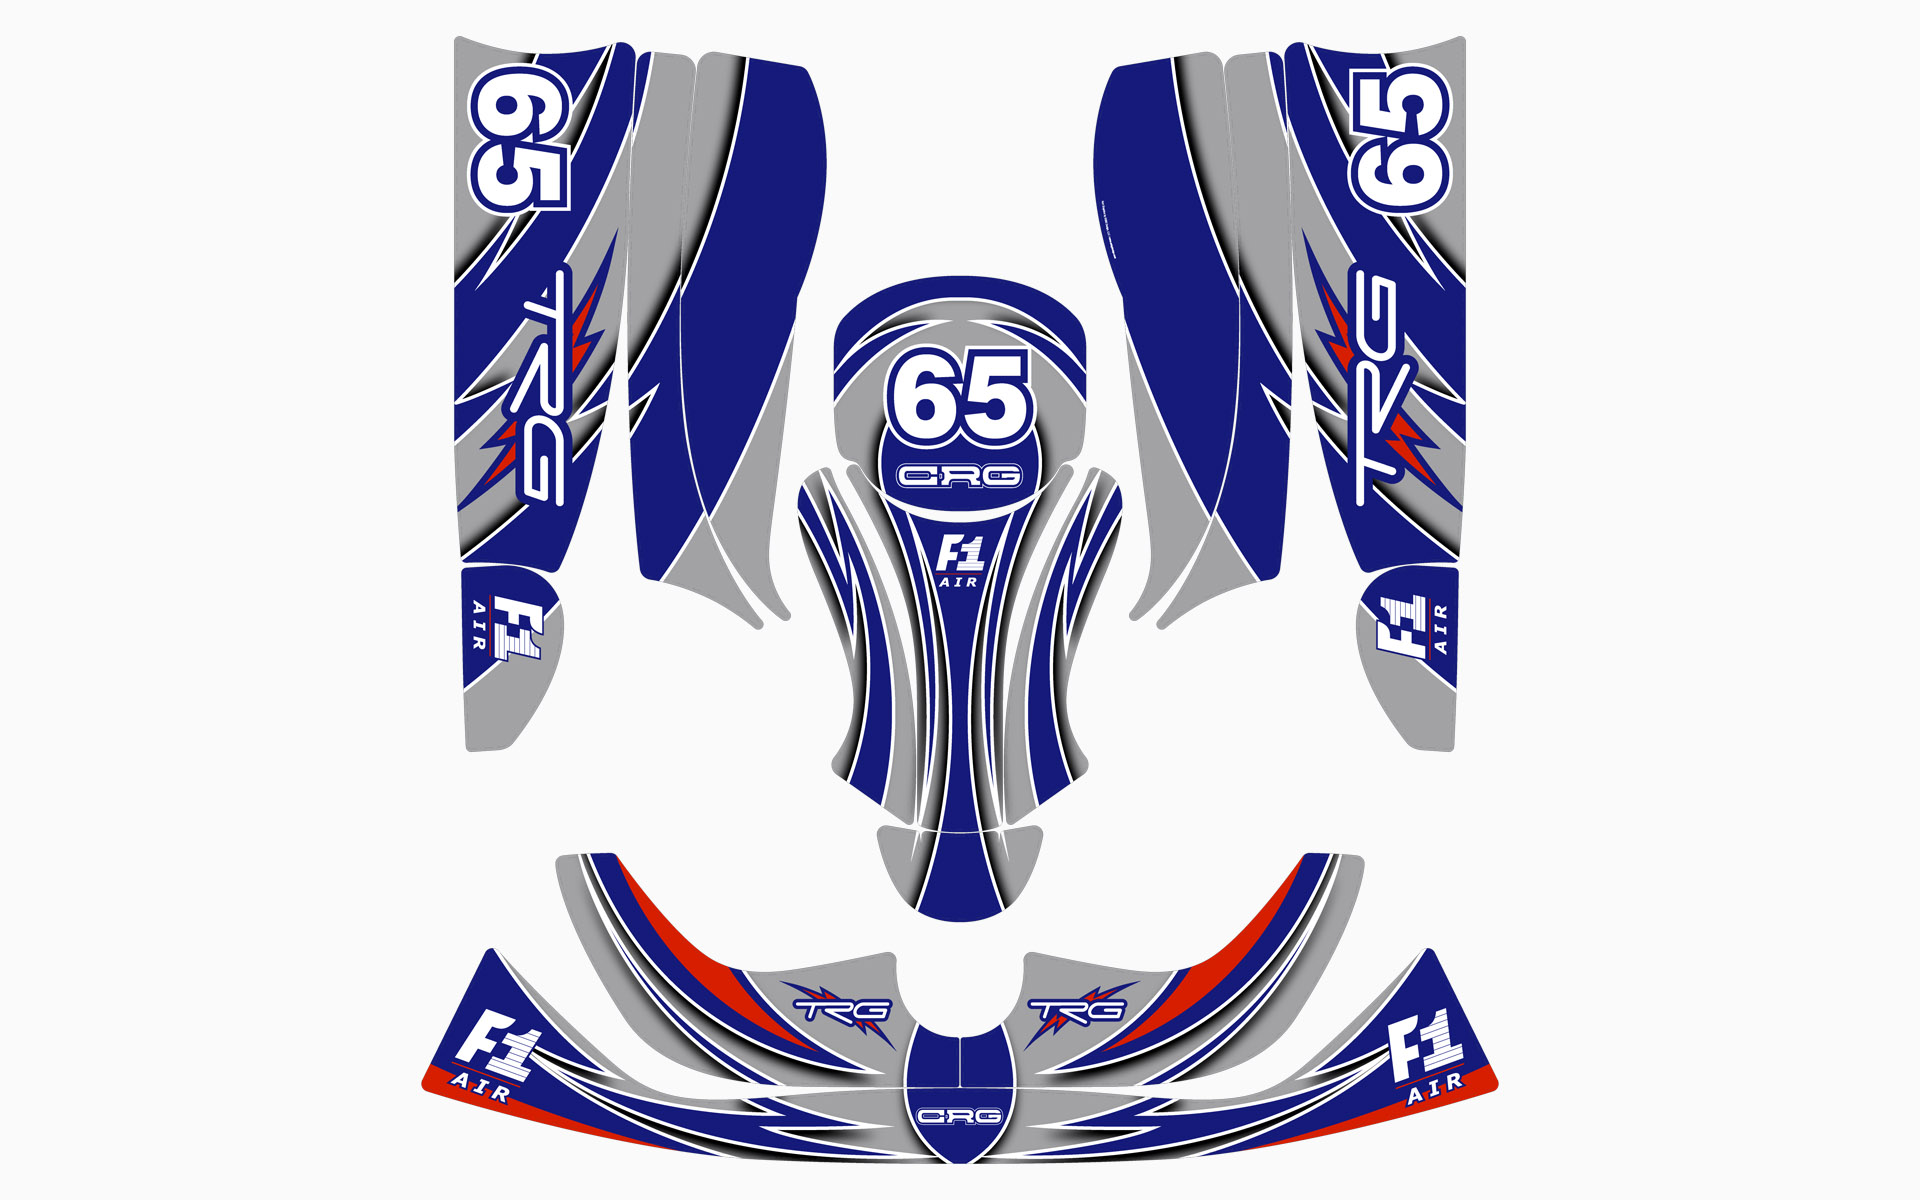 2005 GM Racing CRG Kart Decal Kit